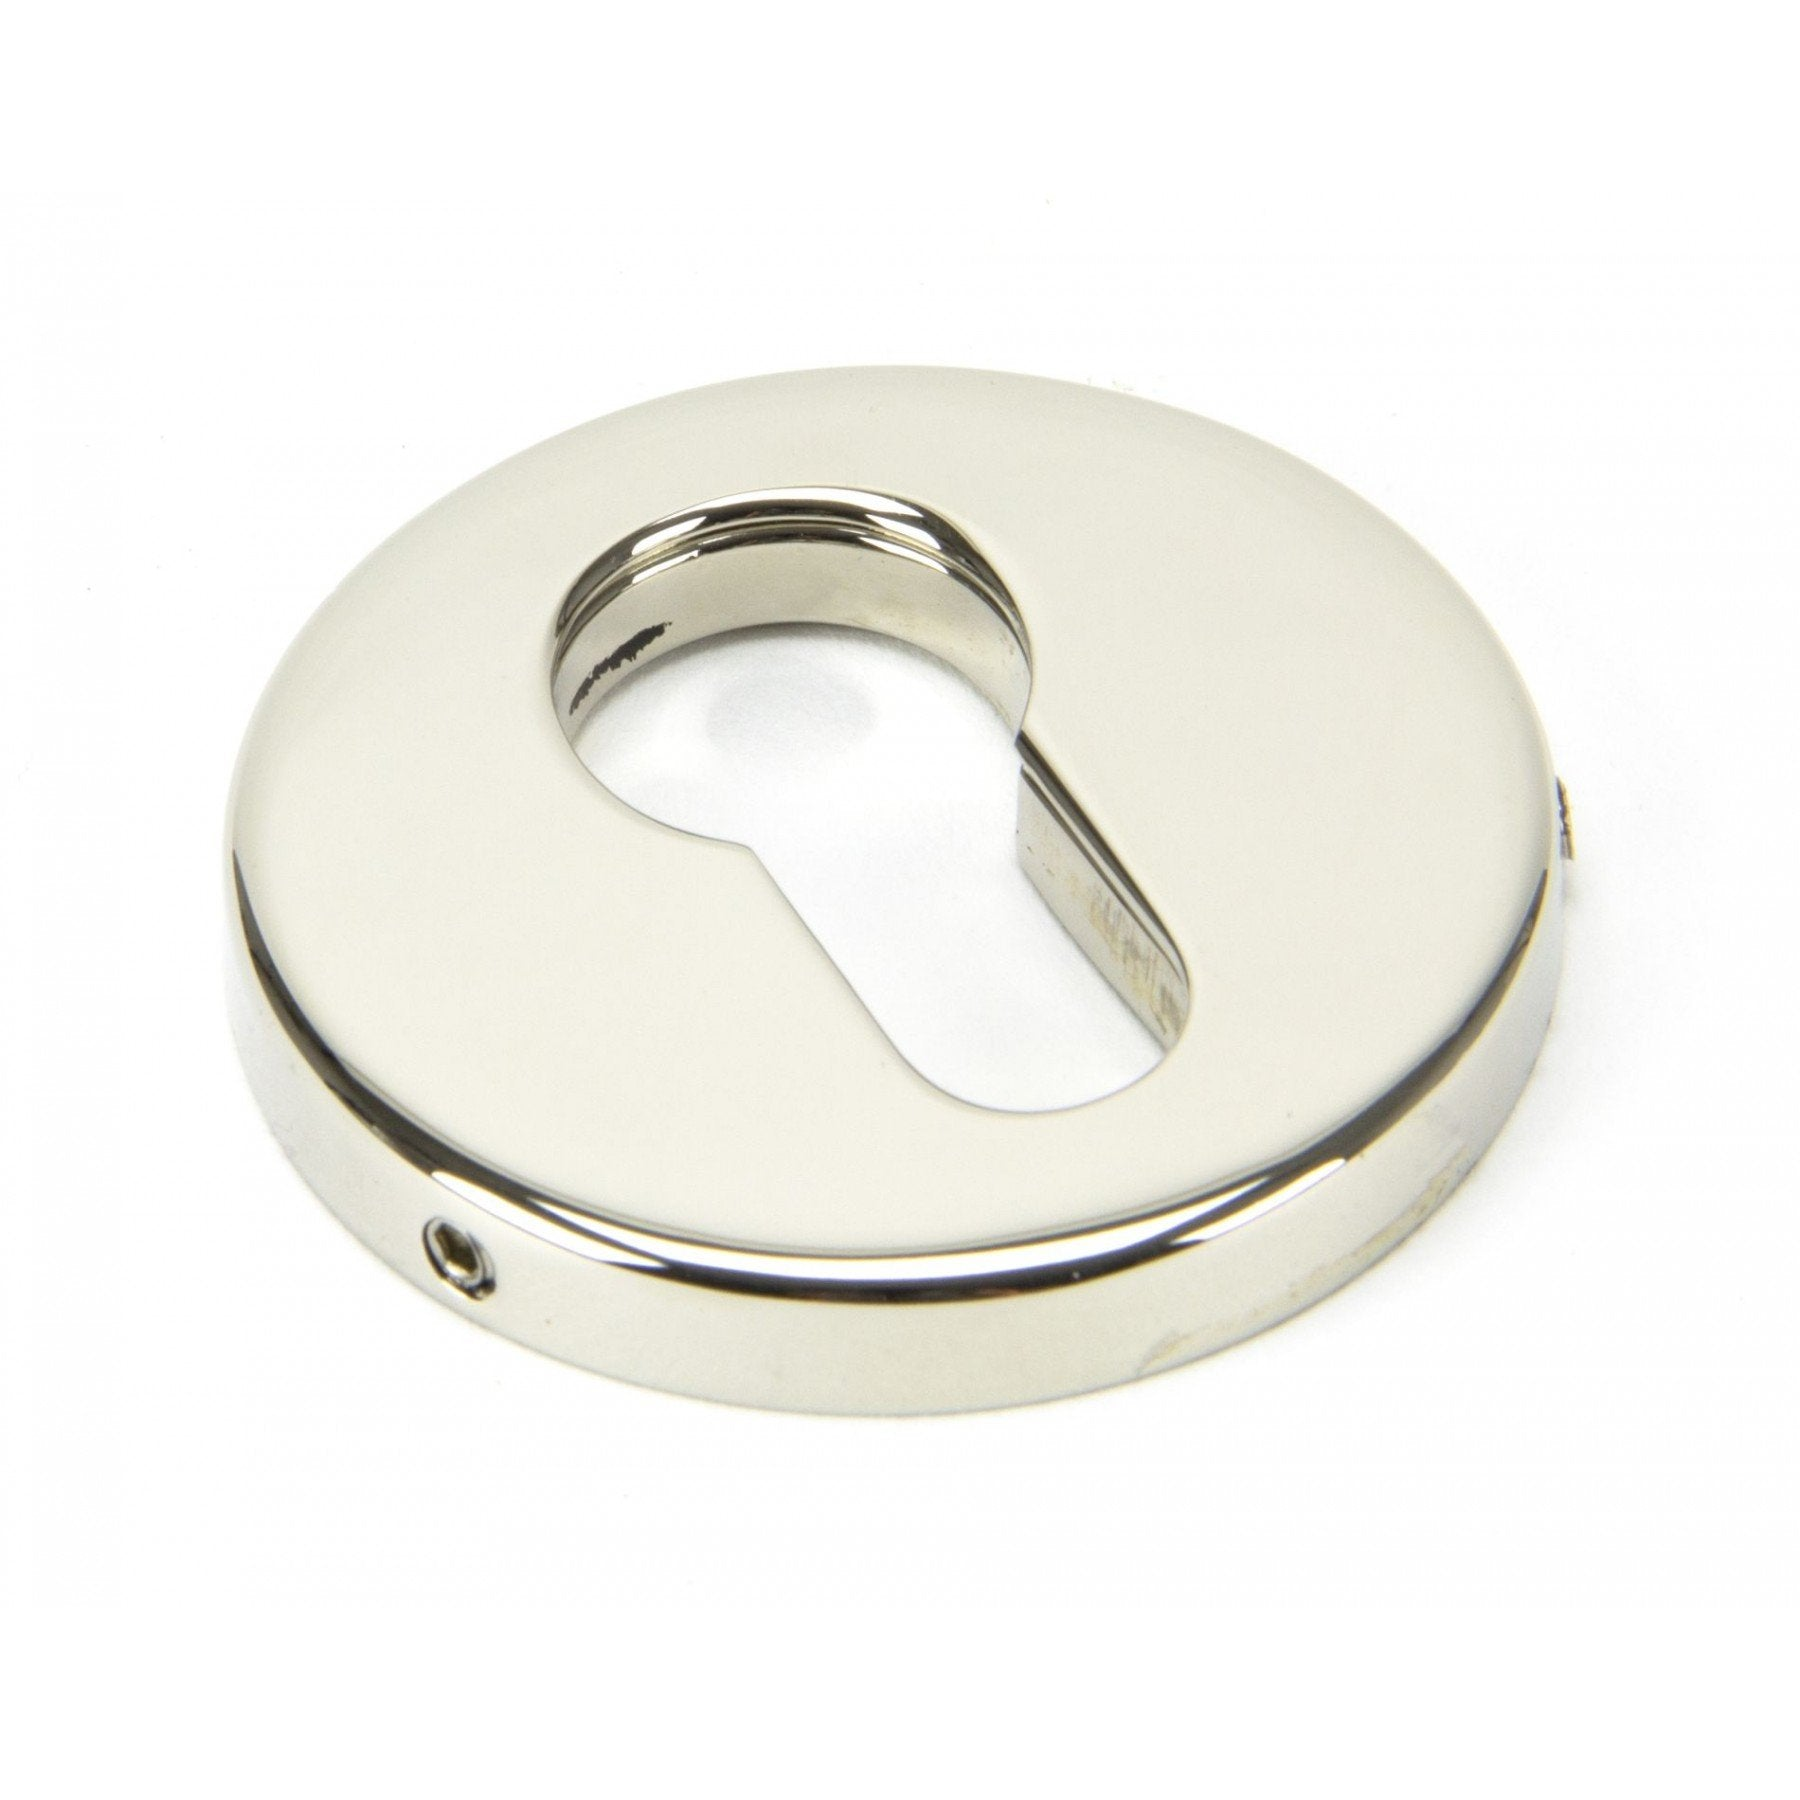 Polished Nickel 52mm Regency Concealed Escutcheon - No.42 Interiors